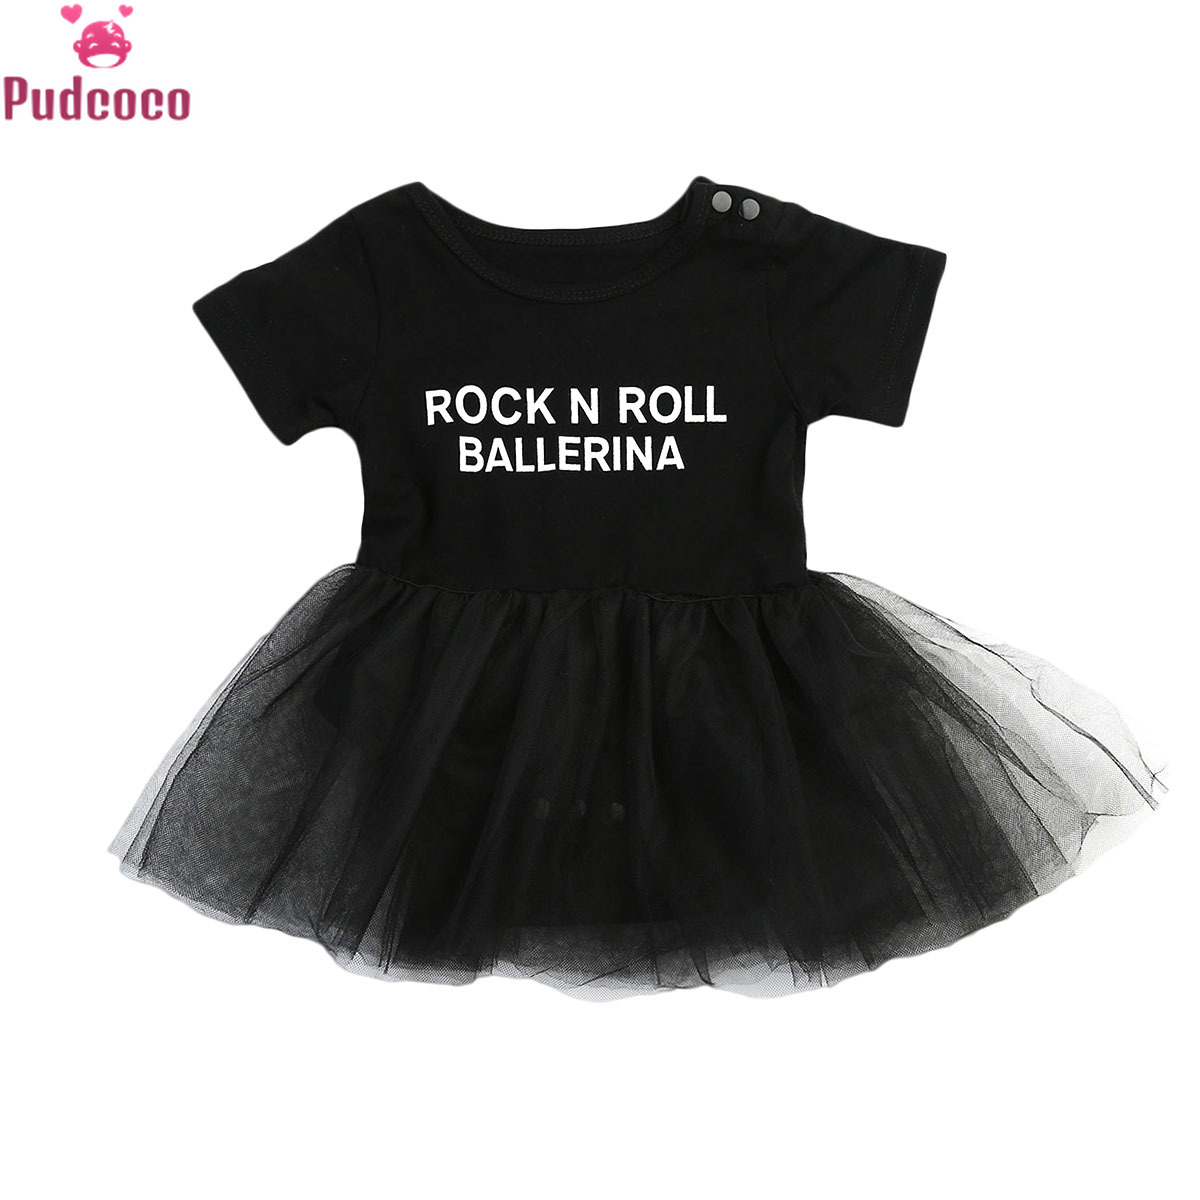 New Born Infant Toddler Clothes Baby Girl Romper Princess Dress Print Letter Rock N Roll Tulle Tutu Lace Dresses